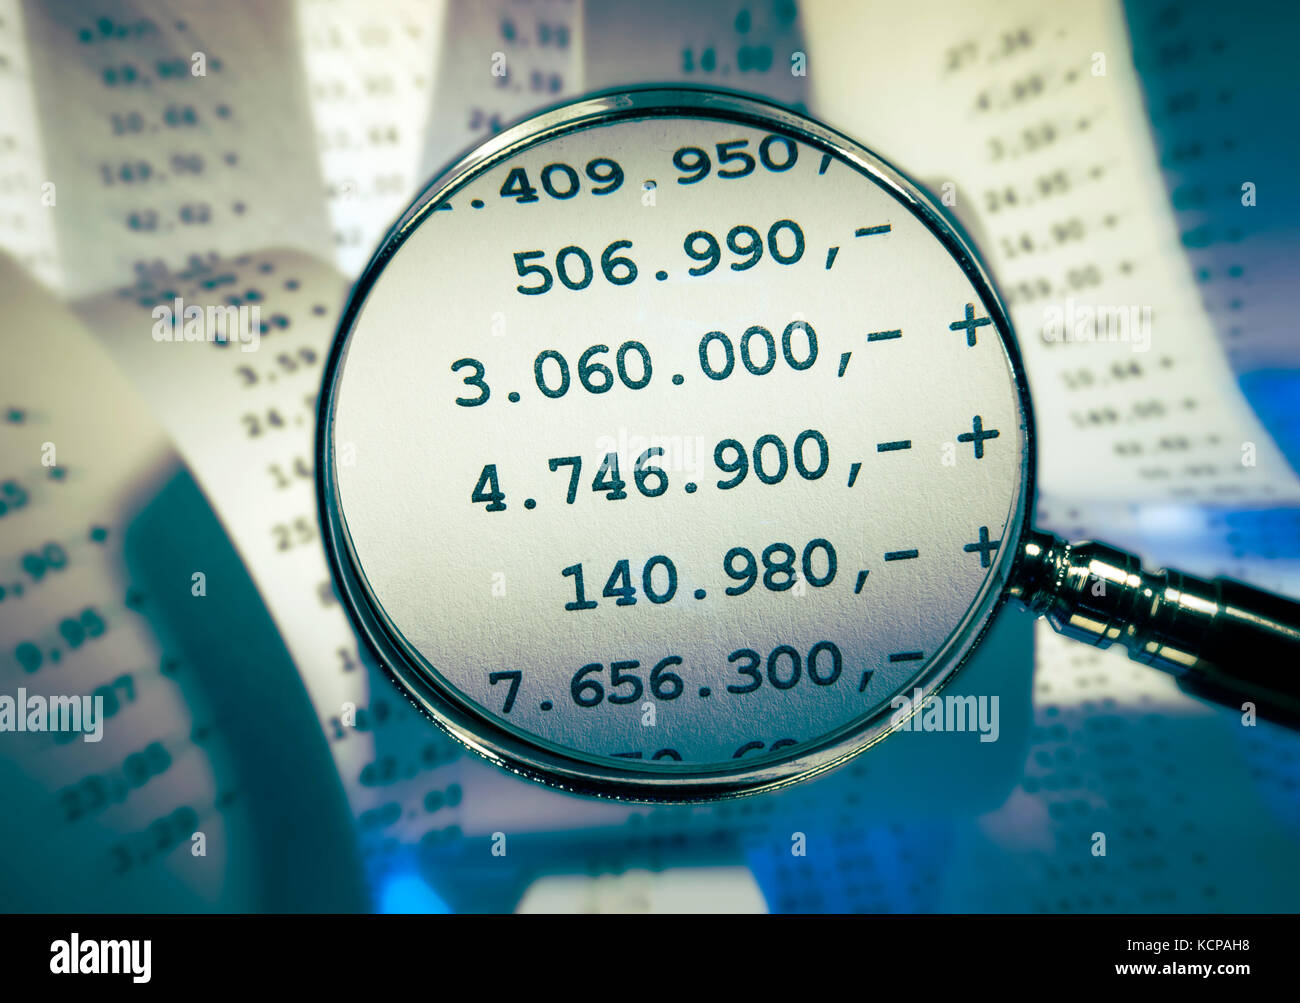 Magnifier focussing high sums in front of a background with receipts - Stock Image